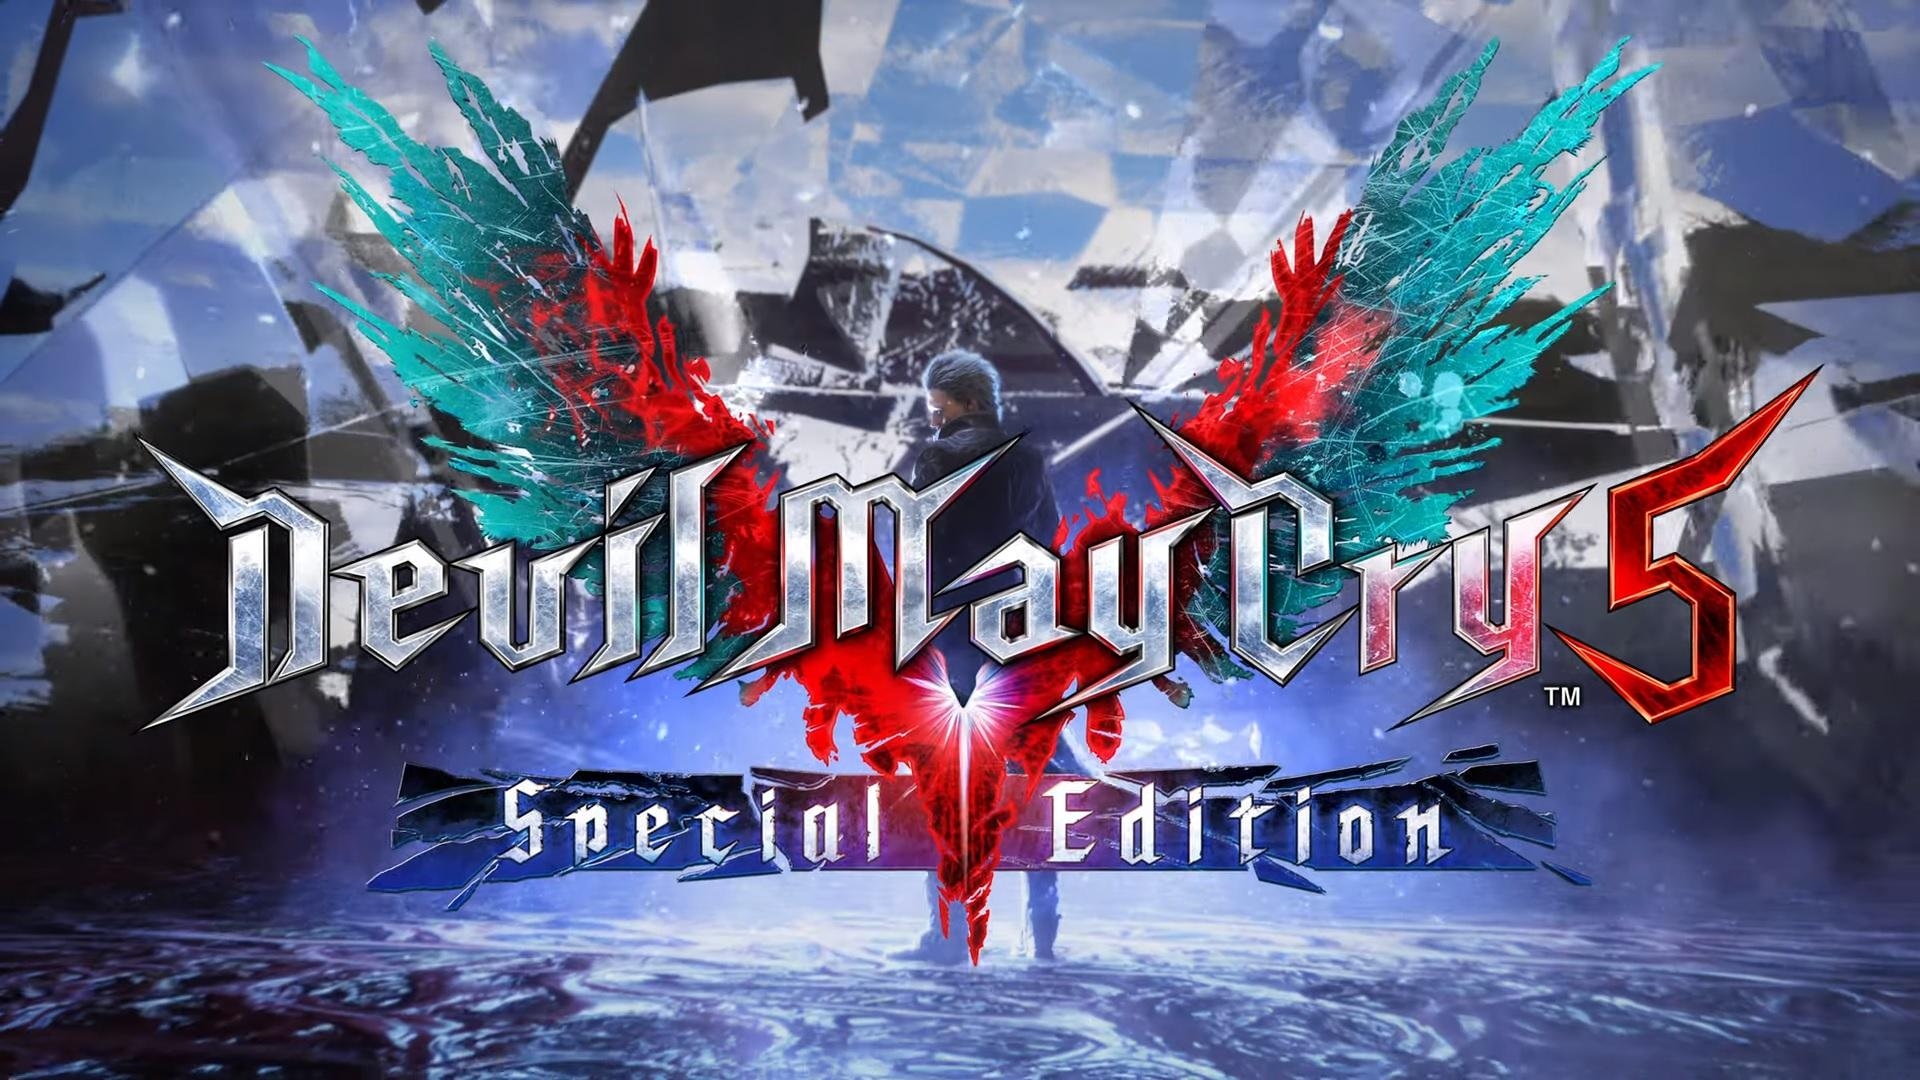 Devil May Cry 5 updates